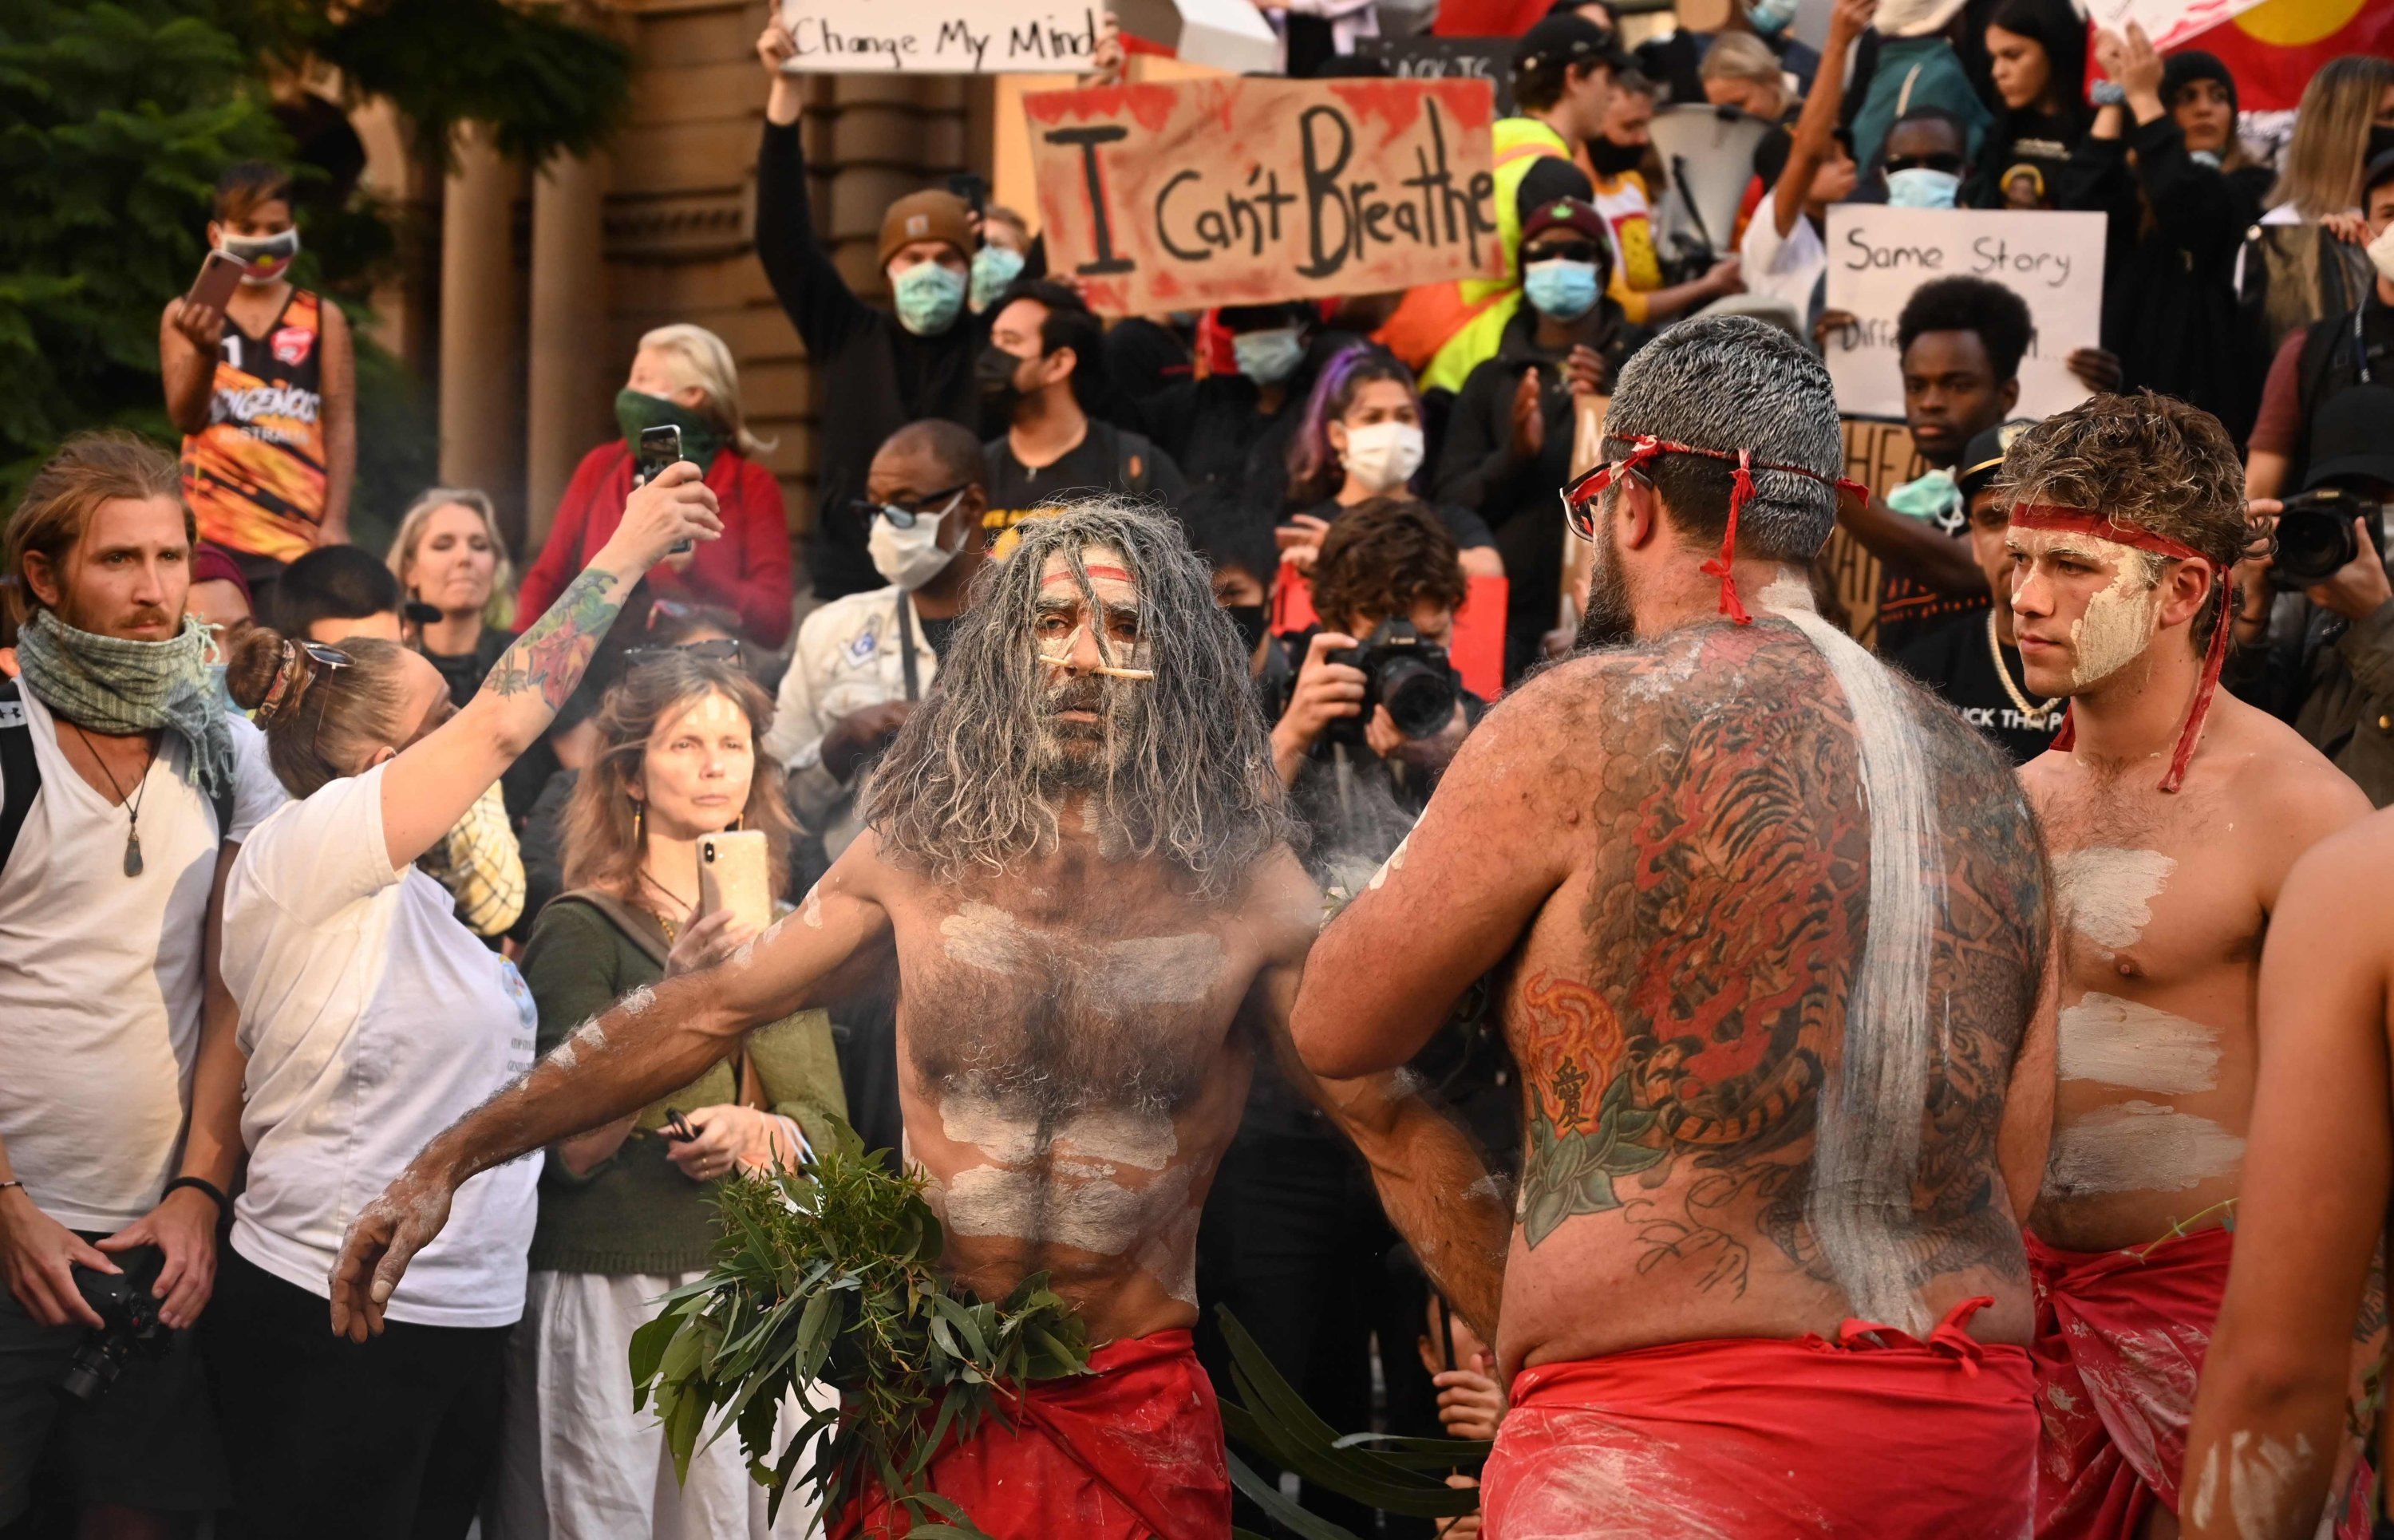 Aboriginal protesters perform a traditional smoking ceremony to express solidarity with U.S. protestors, Sydney, June 6, 2020. (AFP Photo)